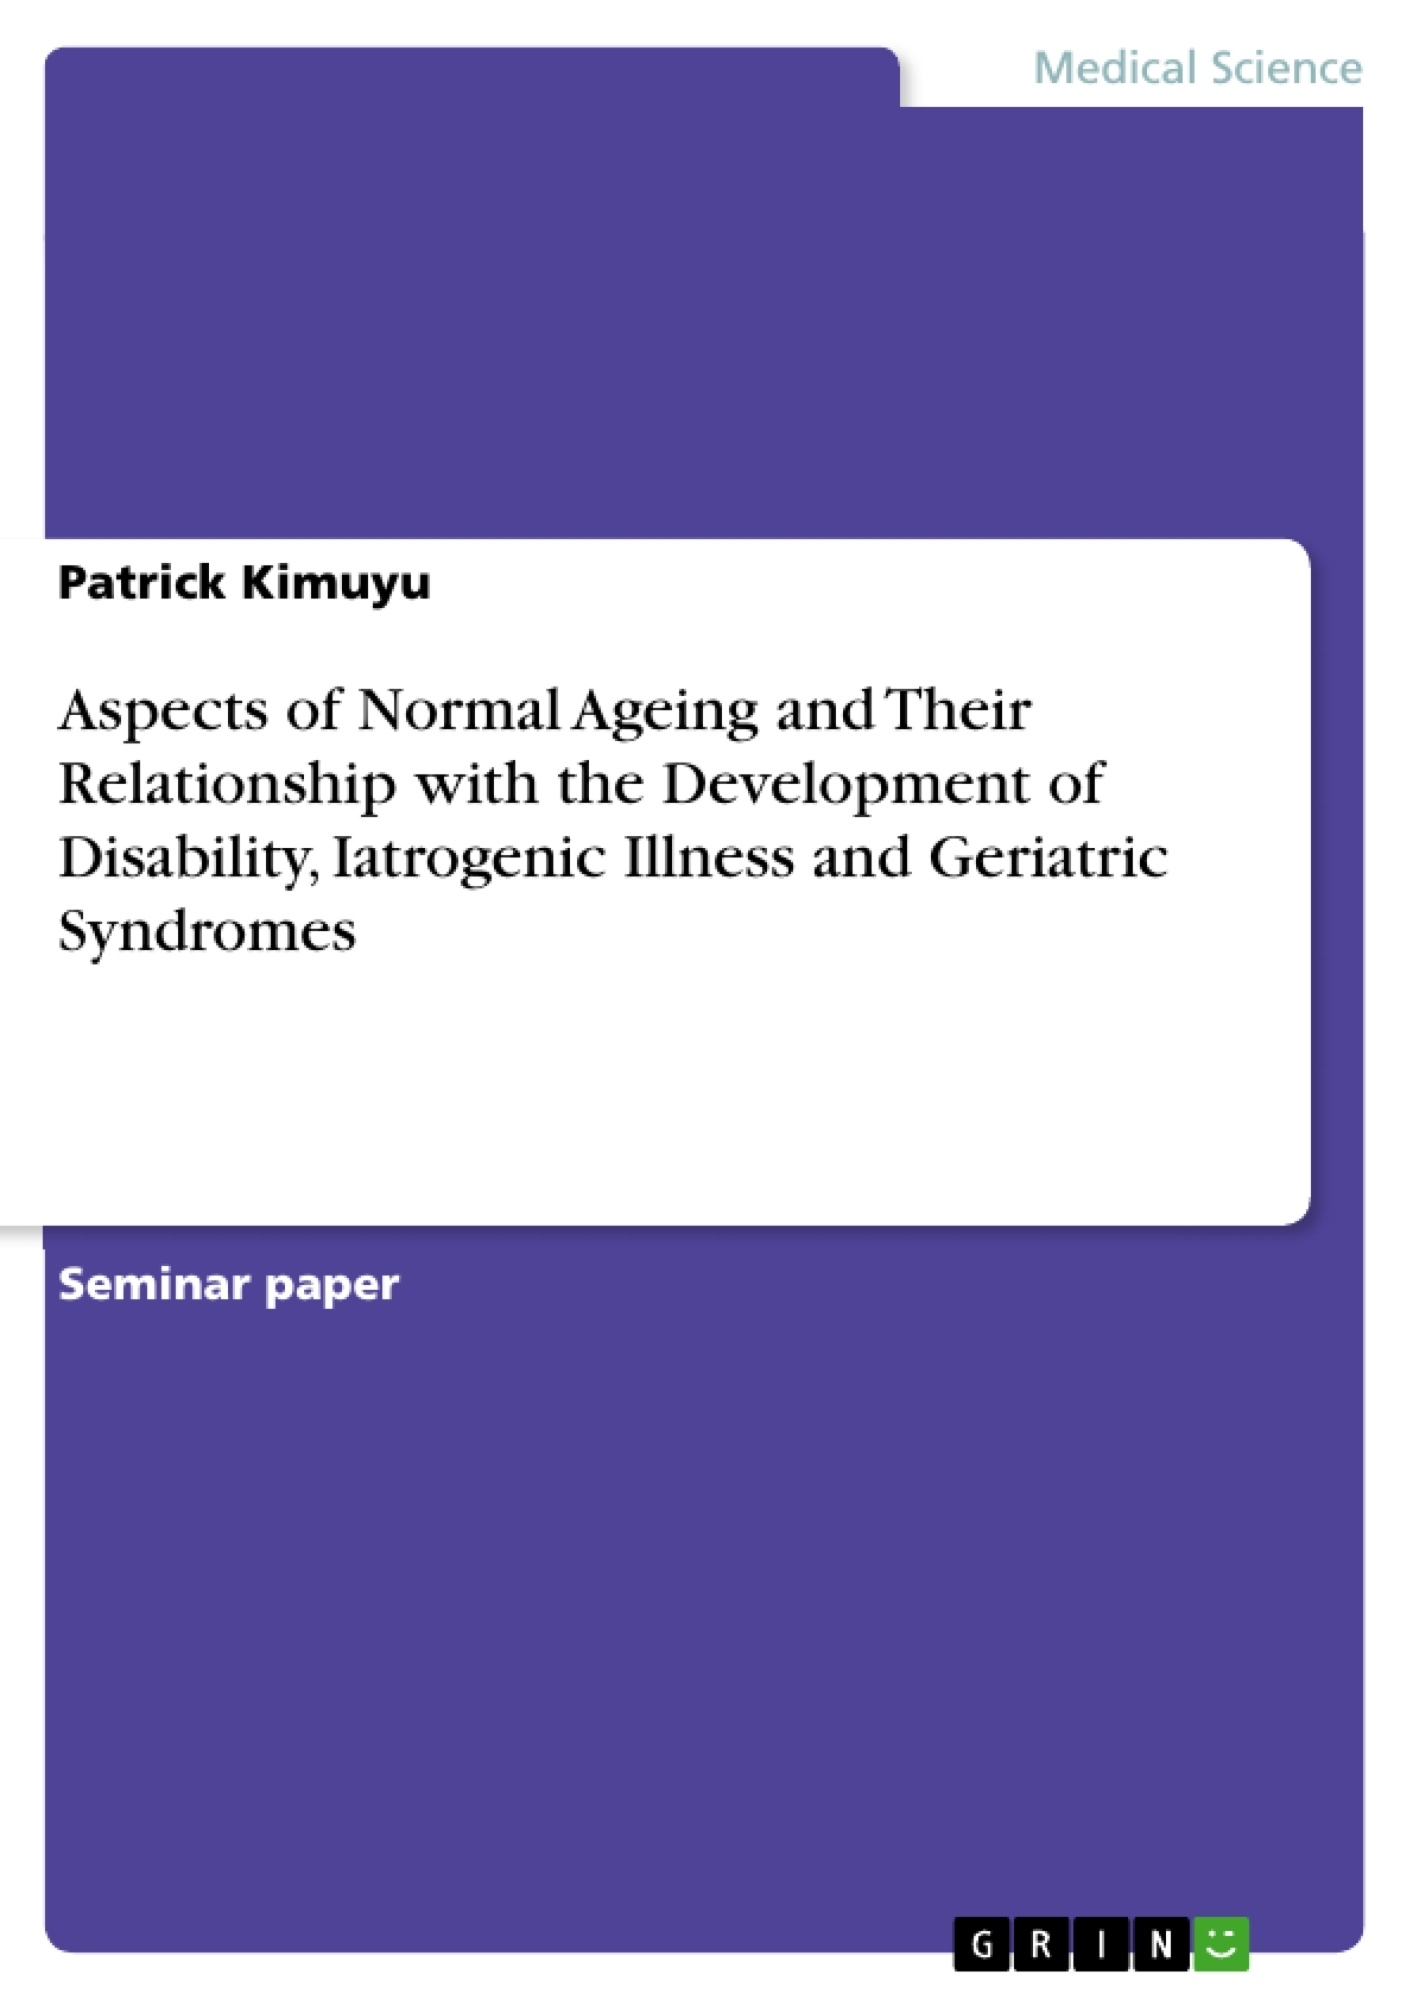 Title: Aspects of Normal Ageing and Their Relationship with the Development of Disability, Iatrogenic Illness and Geriatric Syndromes